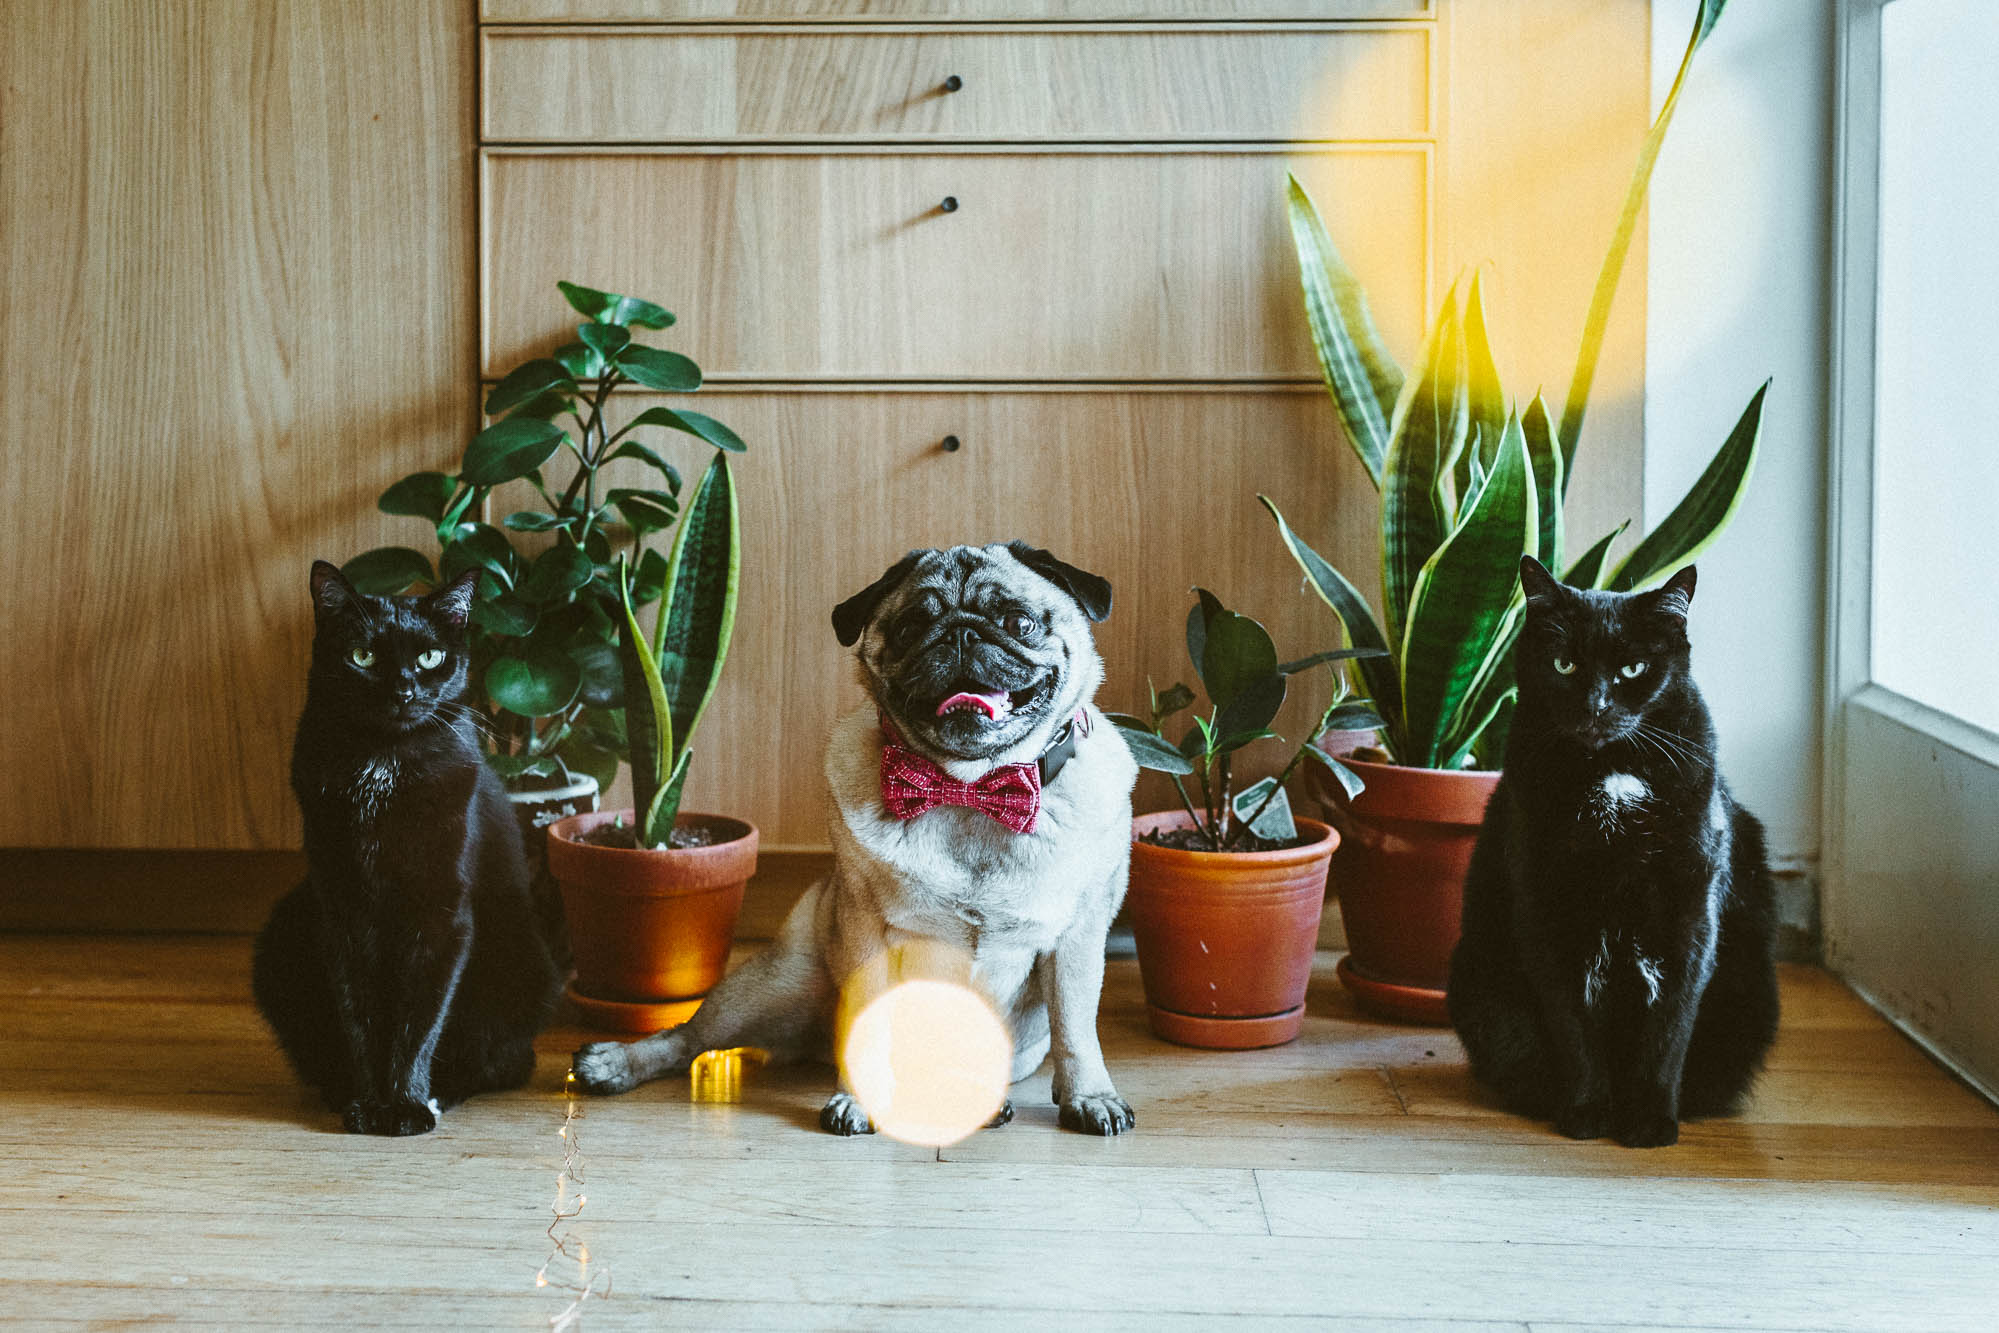 When Jaffa the Pug came for a visit © 2018 twoguineapigs.com.au